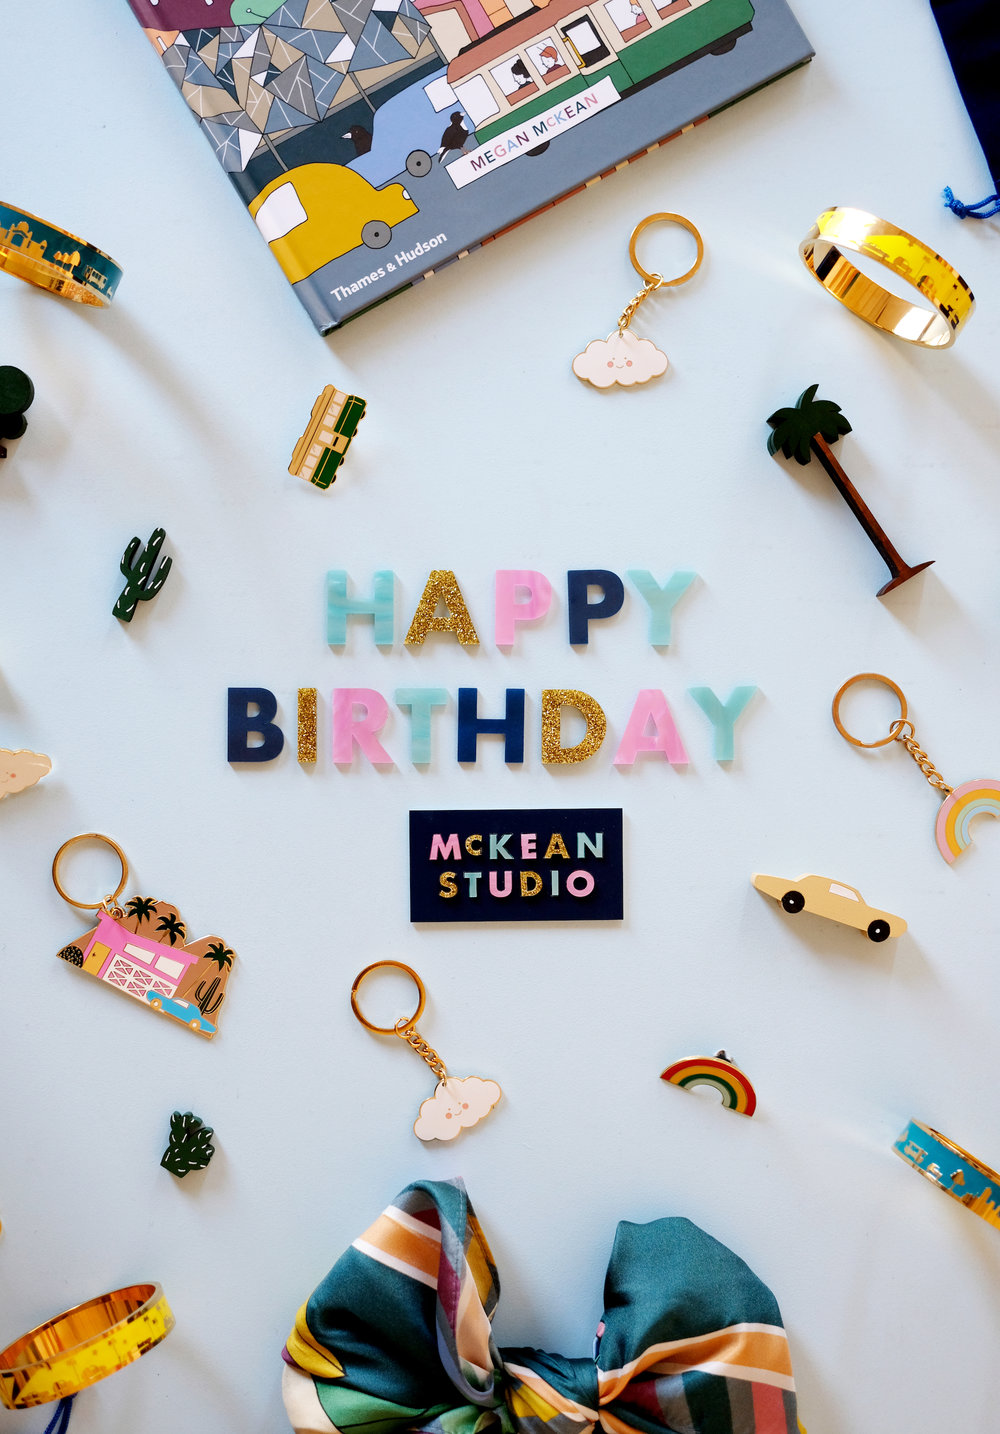 mckeanstudio_birthday.JPG